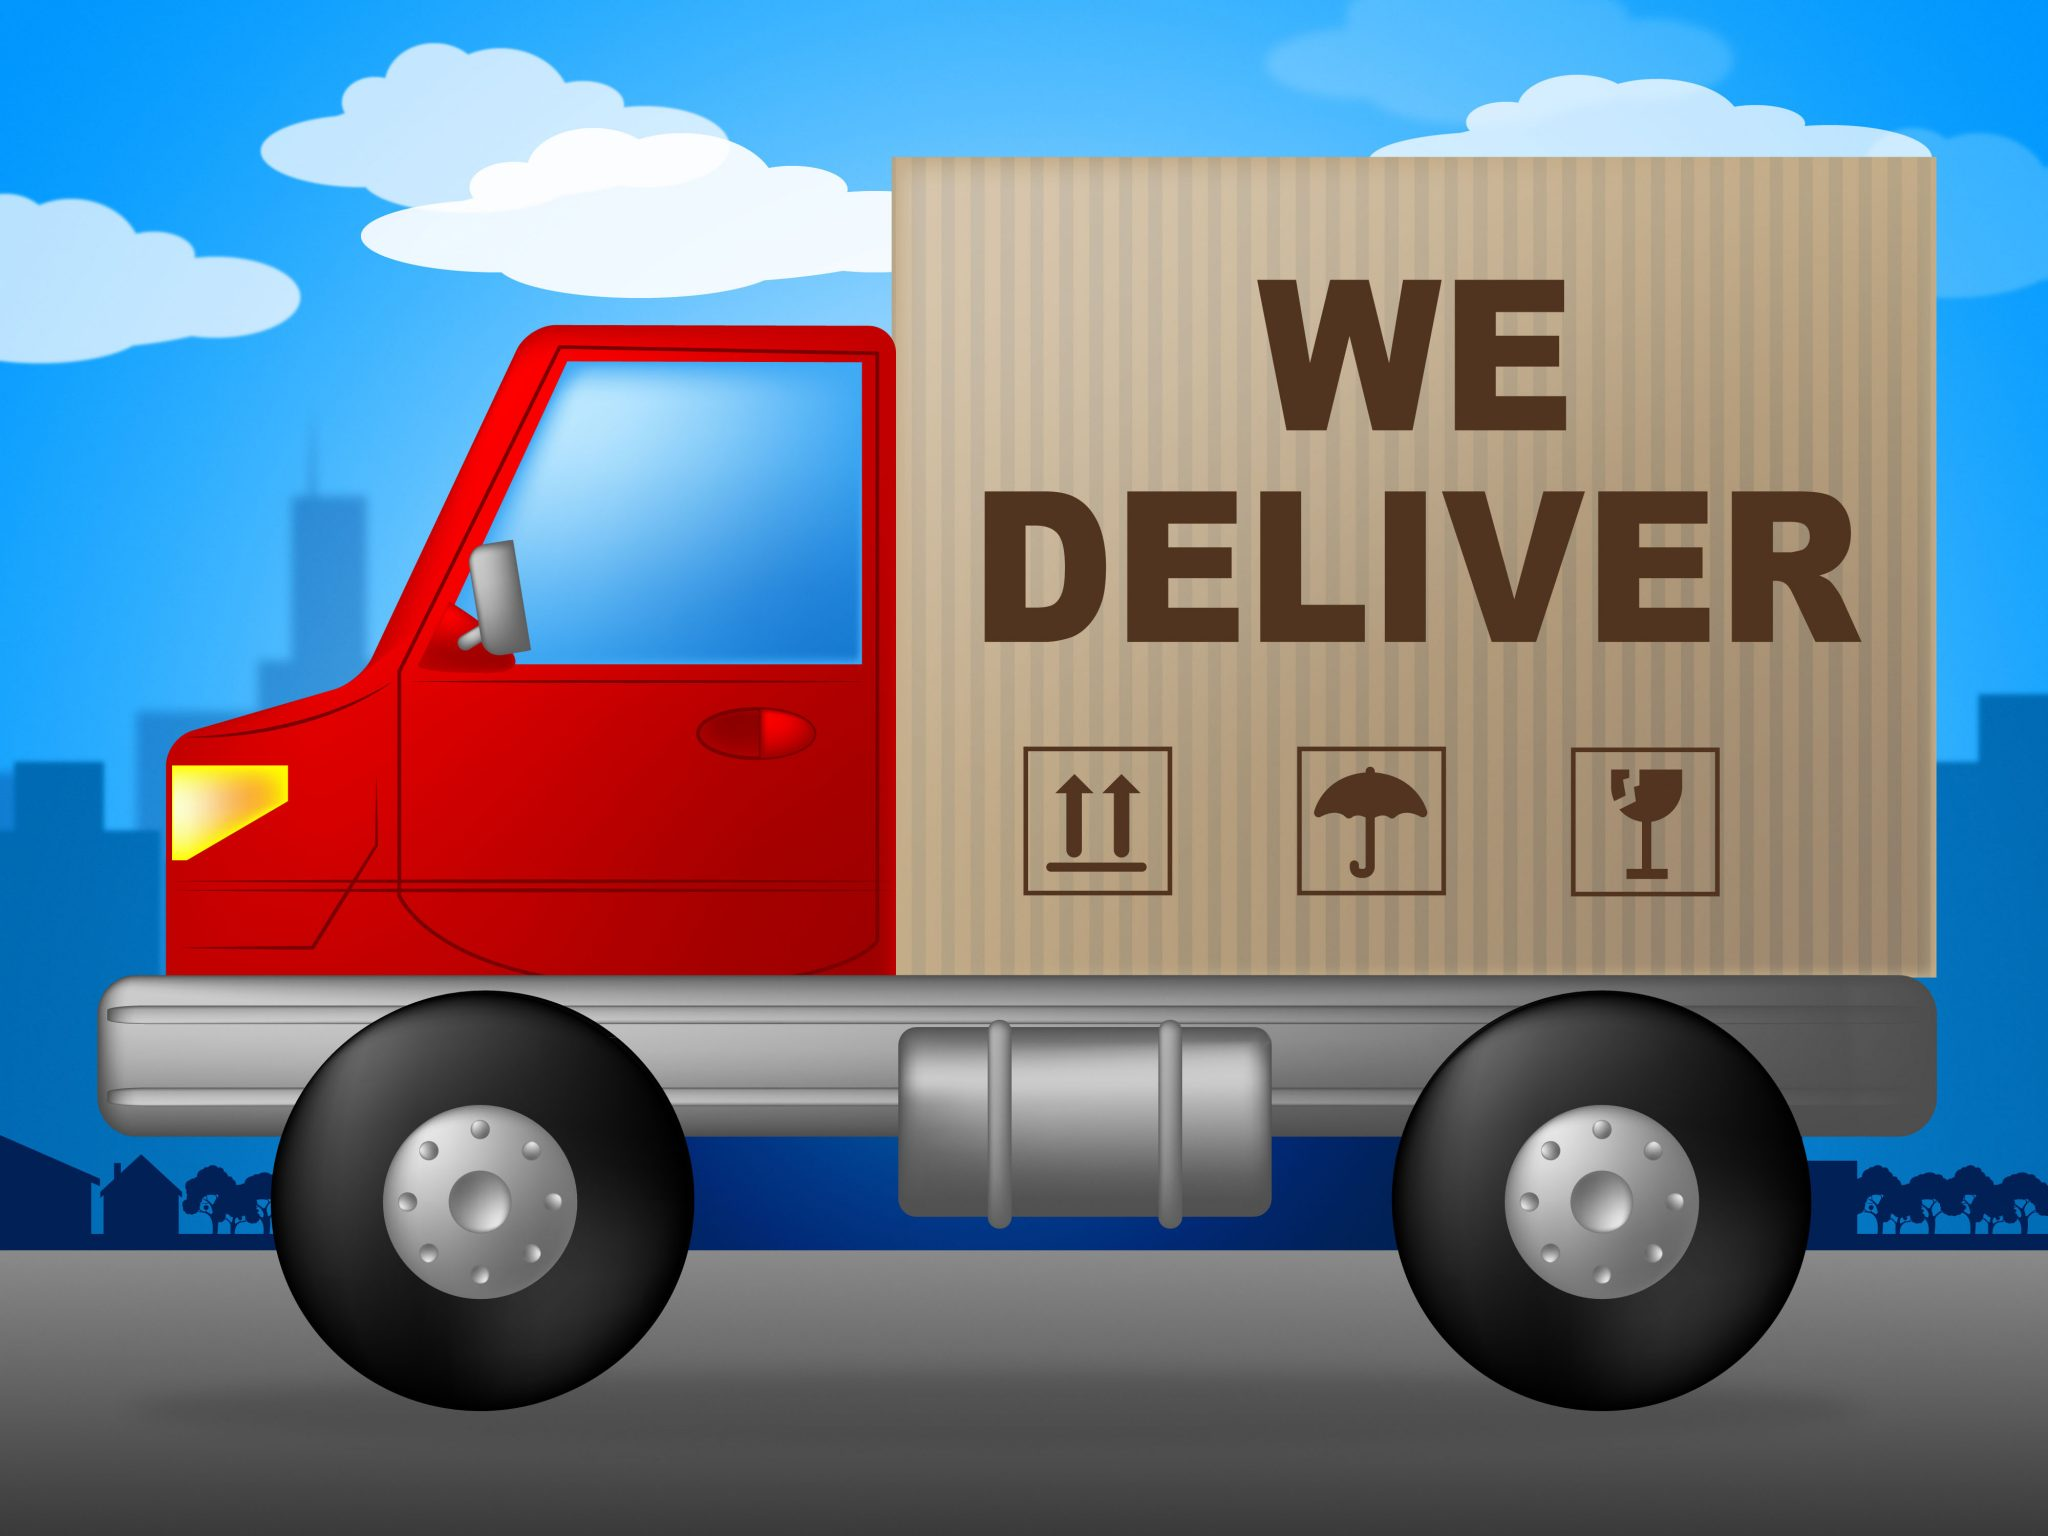 We Deliver Representing Delivery Vehicle And Transporting